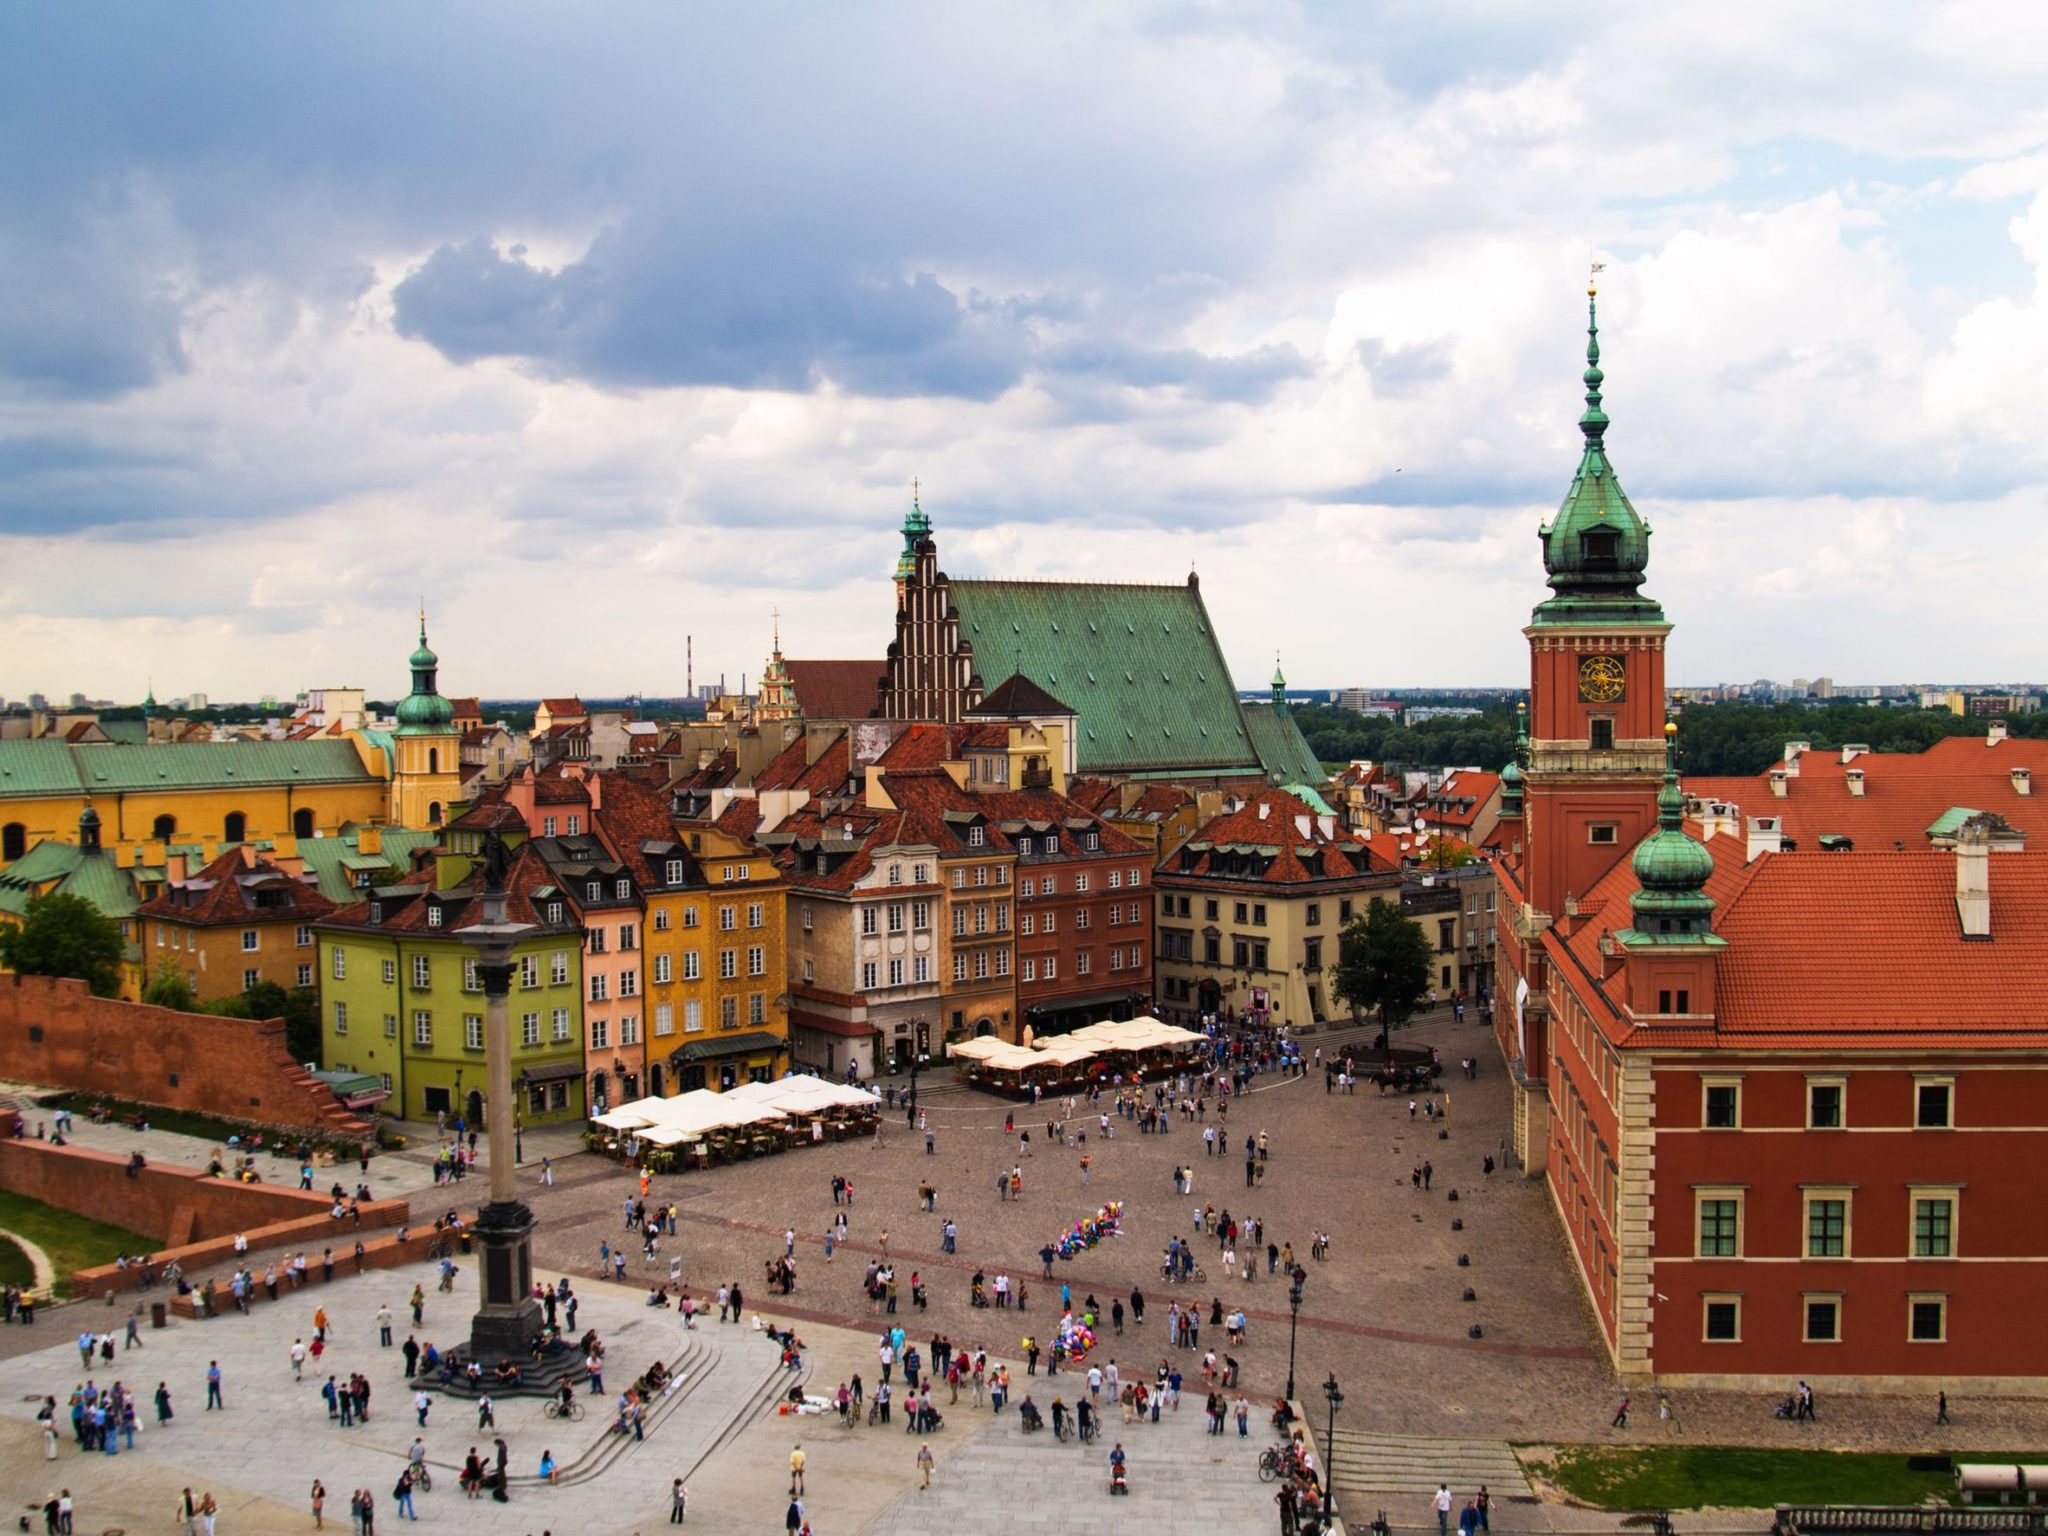 https://i2.wp.com/www.layoverguide.com/wp-content/uploads/2010/01/Old-Town-Square-Warsaw-Poland.jpg